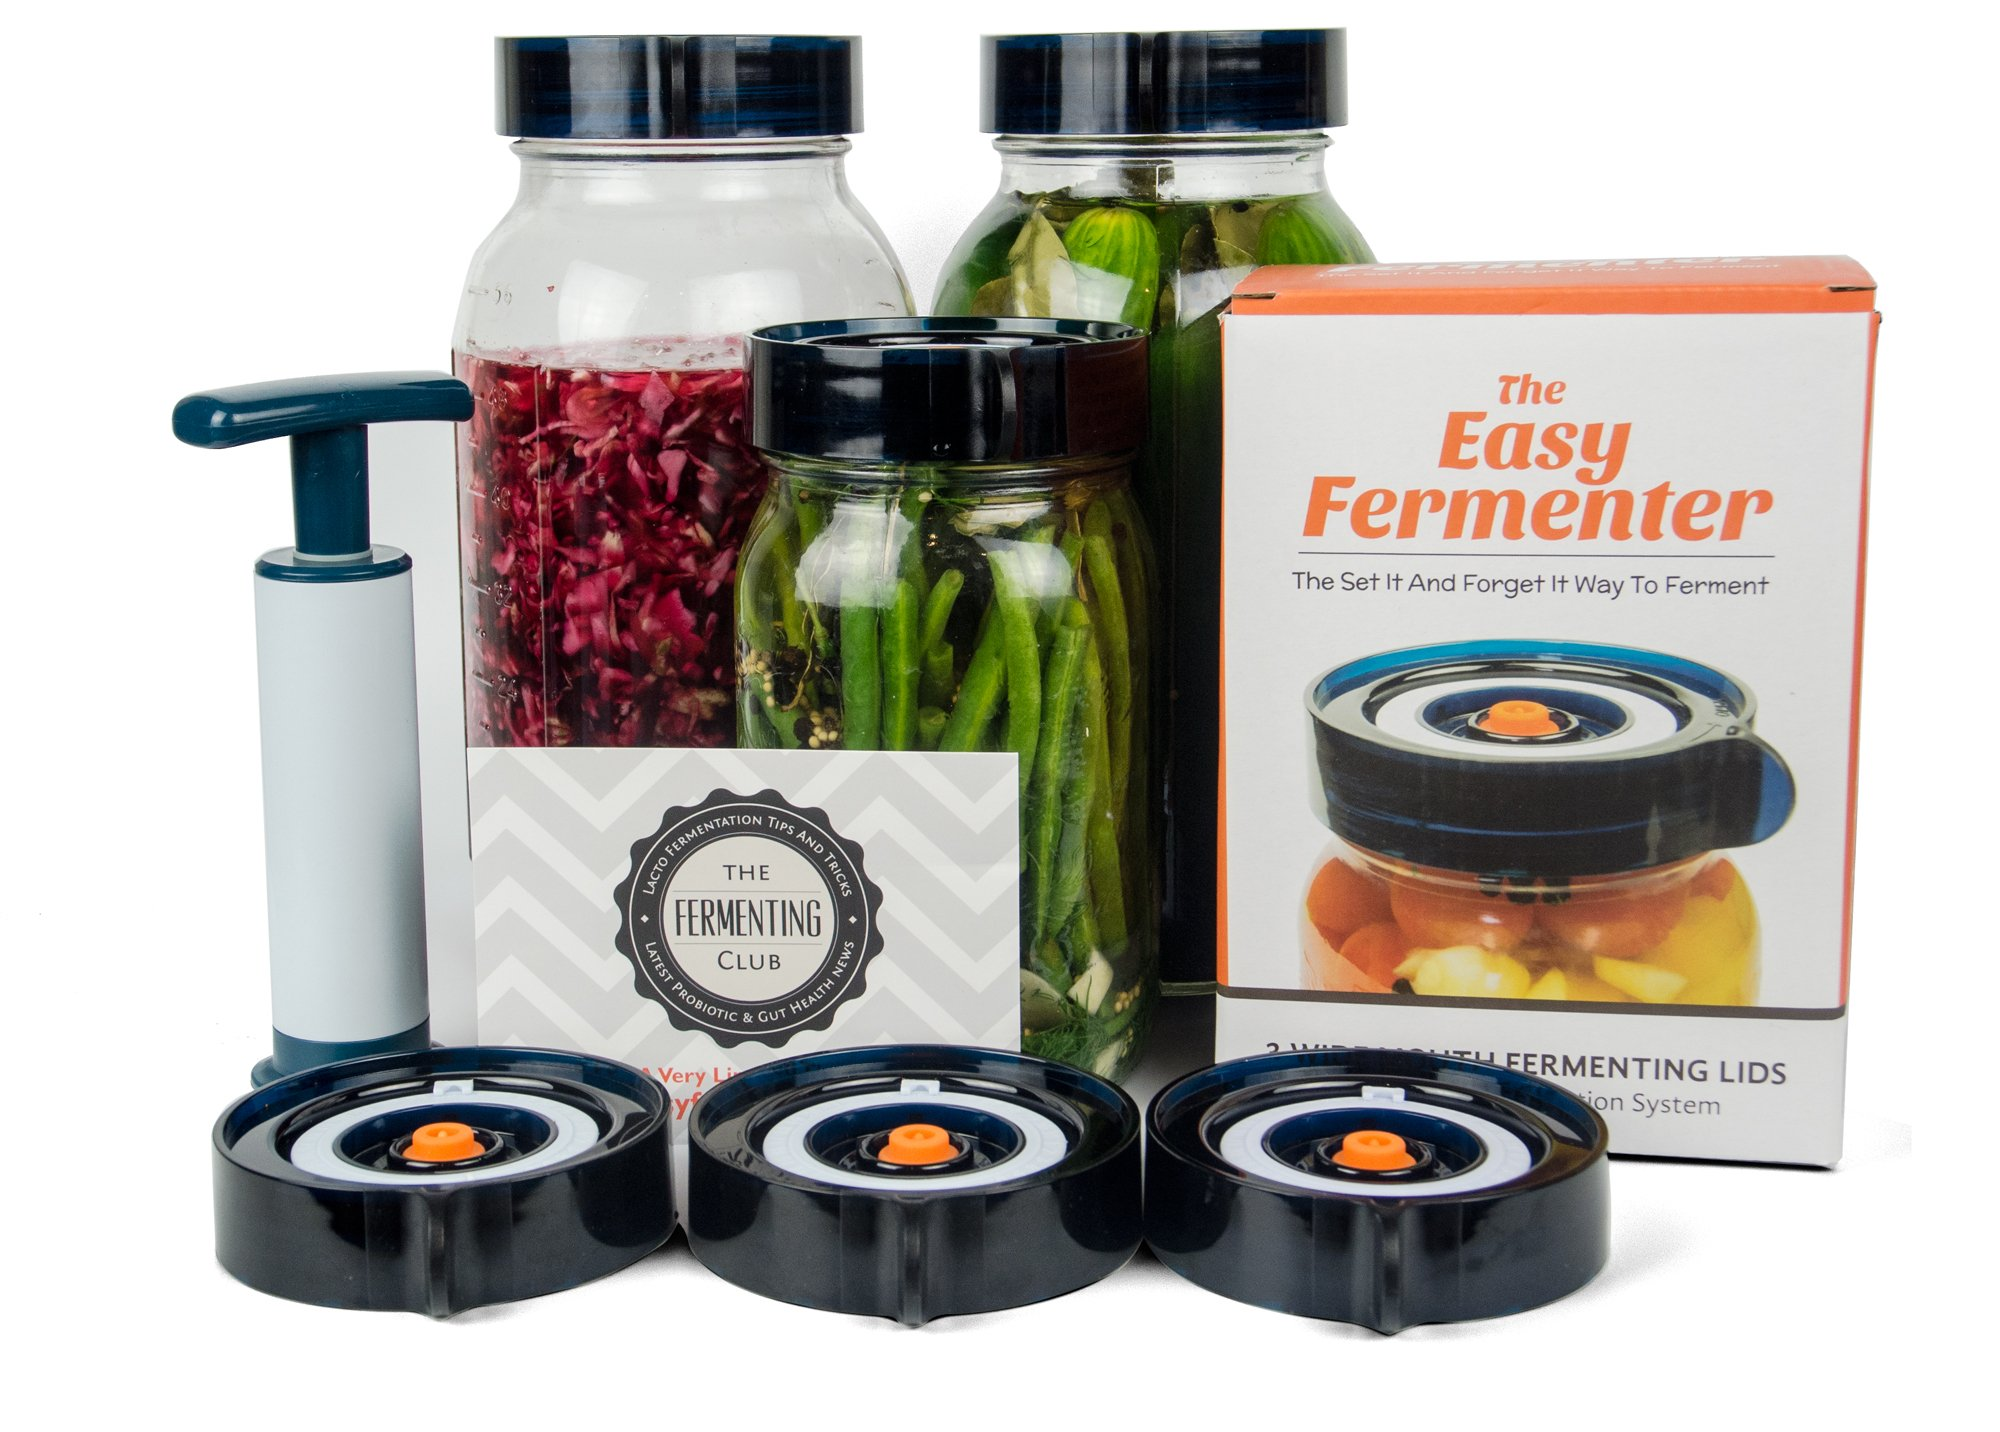 Easy Fermenter Wide Mouth Lid Kit: Simplified Fermenting In Jars Not Crock Pots! Make Sauerkraut, Kimchi, Pickles Or Any Fermented Probiotic Foods. 3 Lids, Extractor Pump & Recipe eBook - Mold Free by Nourished Essentials